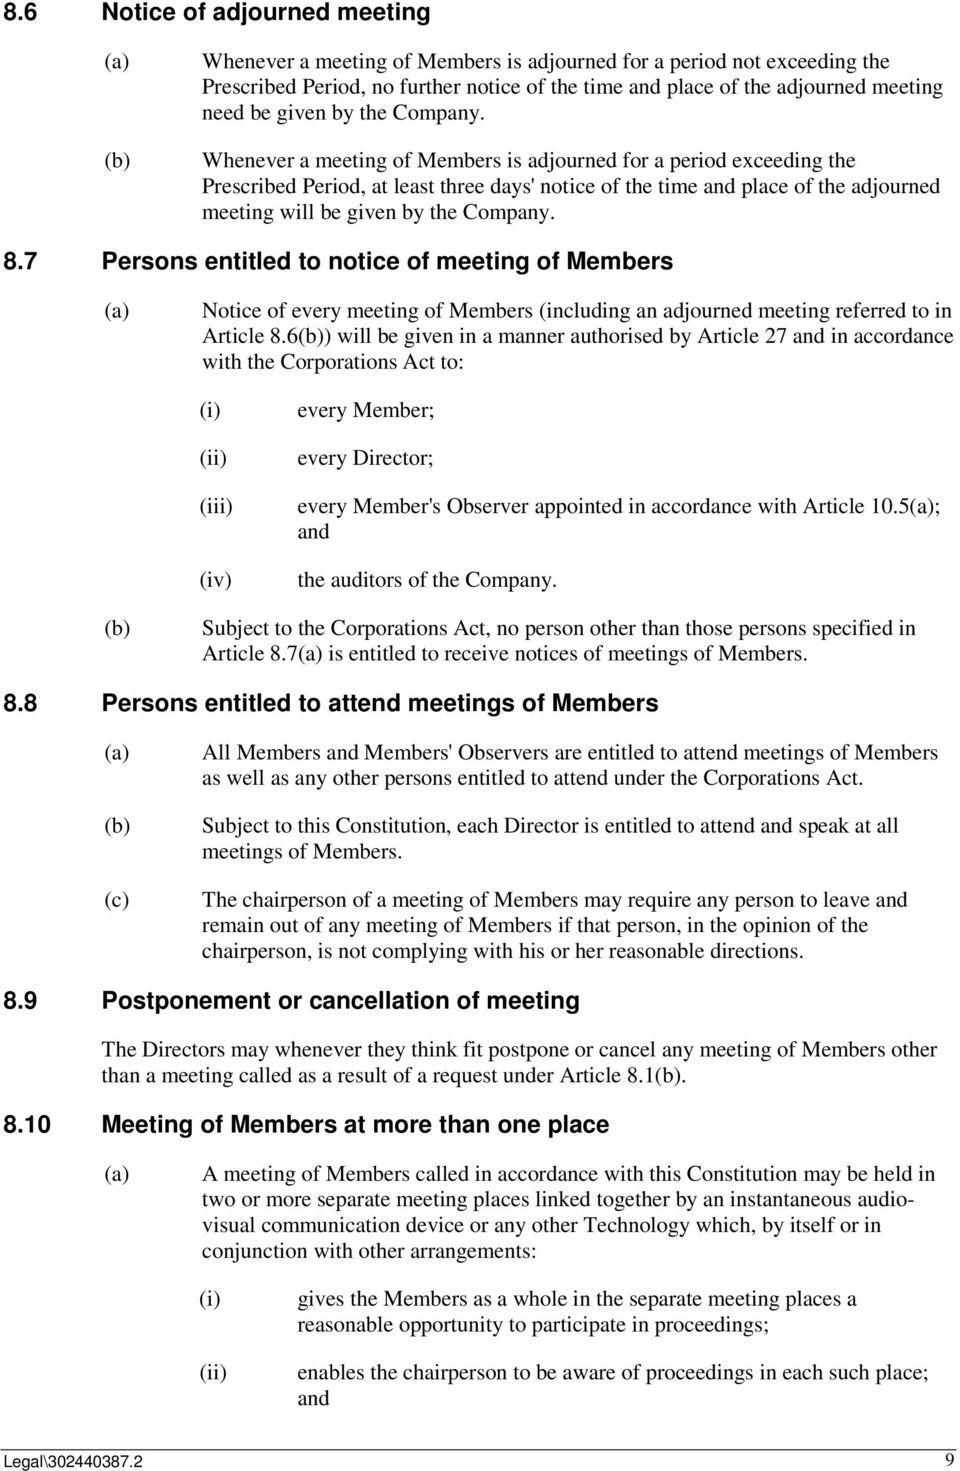 Whenever a meeting of Members is adjourned for a period exceeding the Prescribed Period, at least three days' notice of the time and place of the adjourned meeting will be  8.